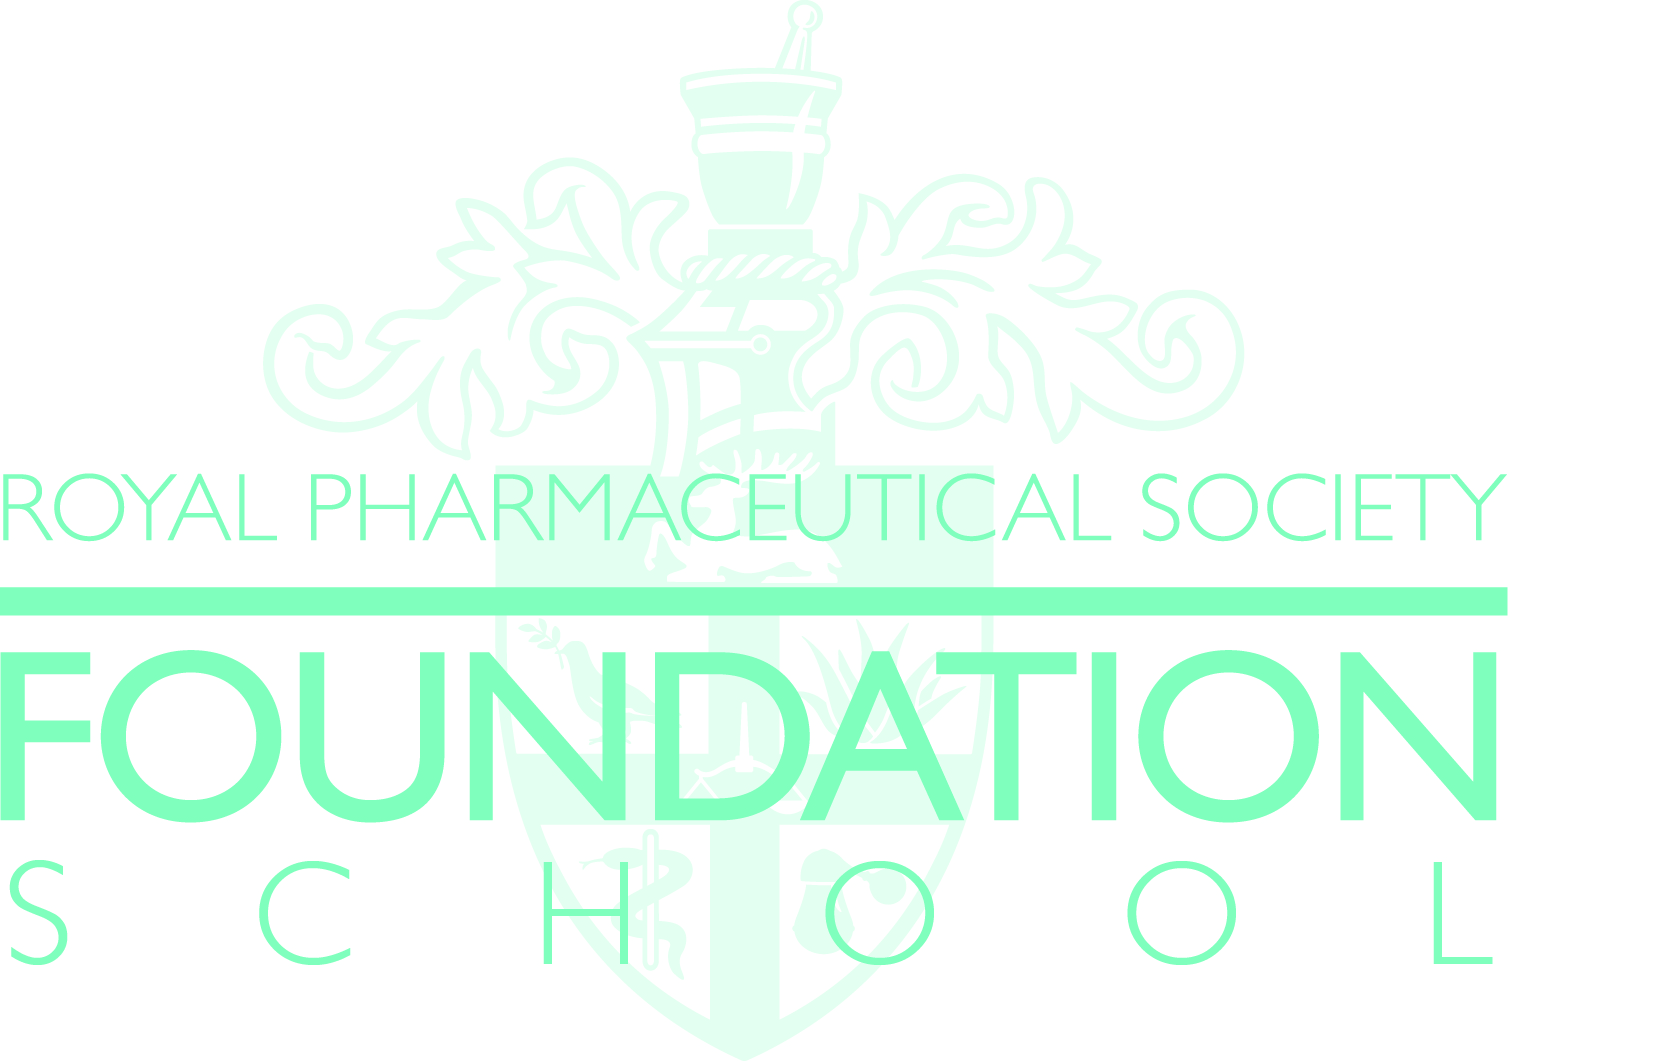 foundation_school_logo